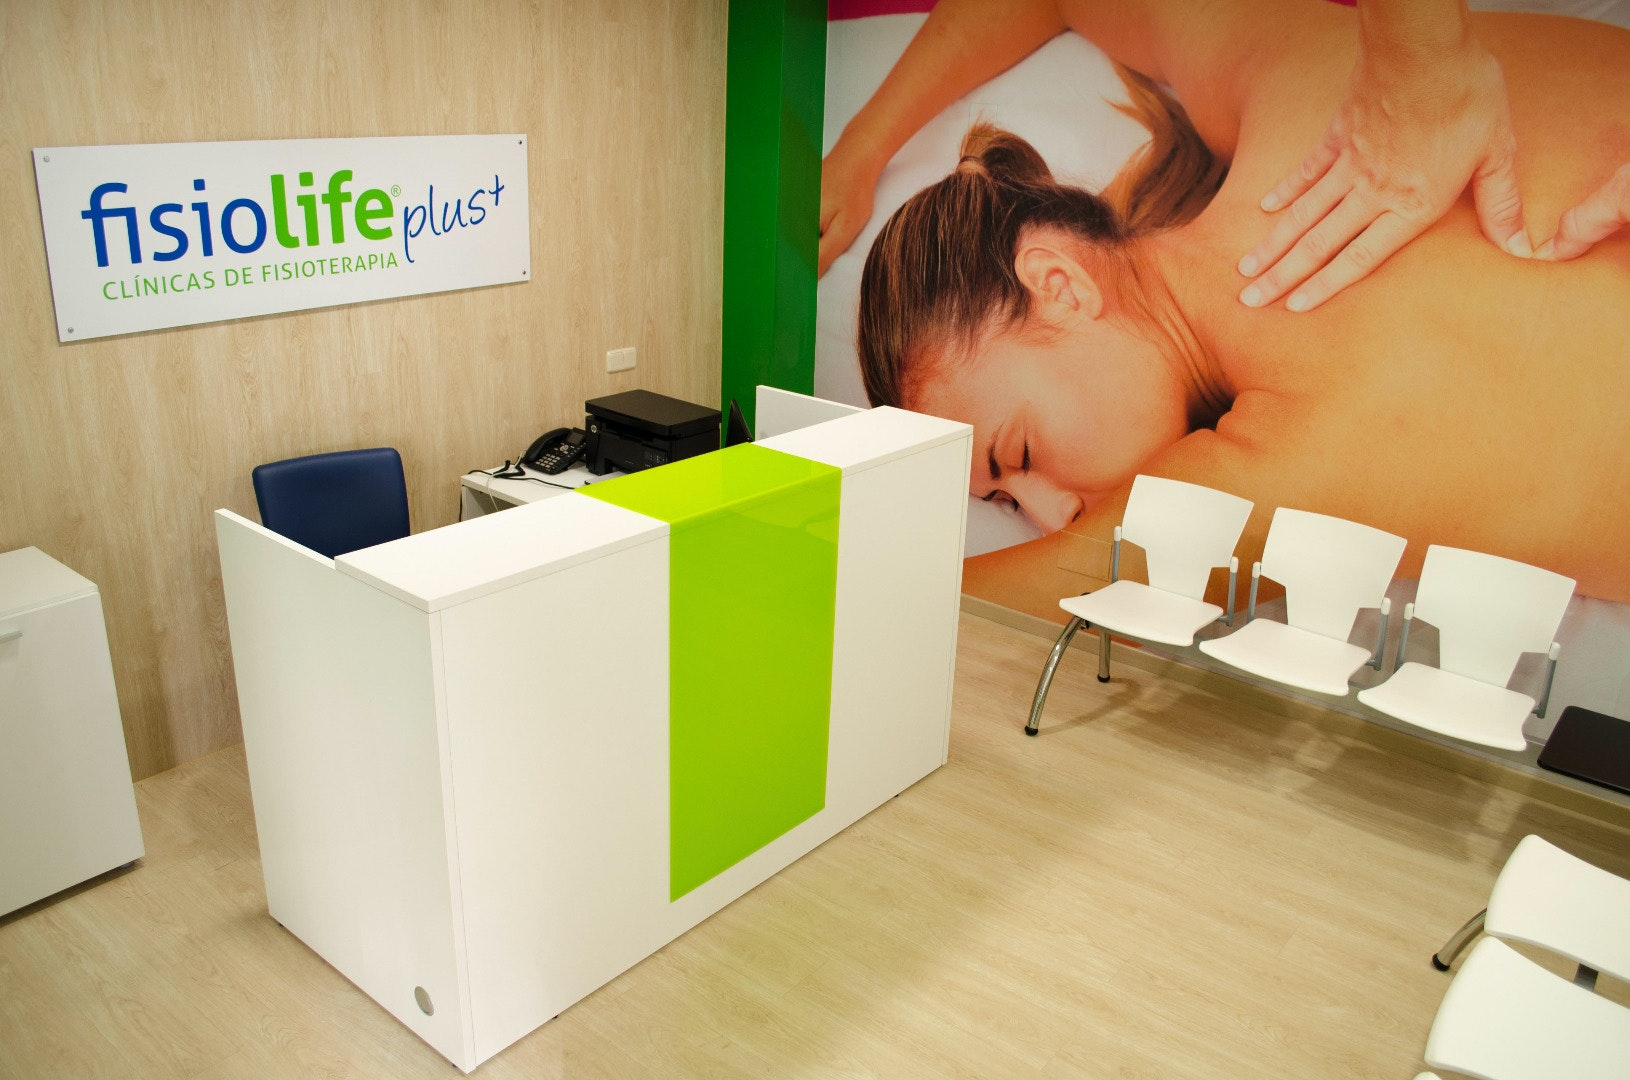 Fisiolife Plus Cuzco Pilates